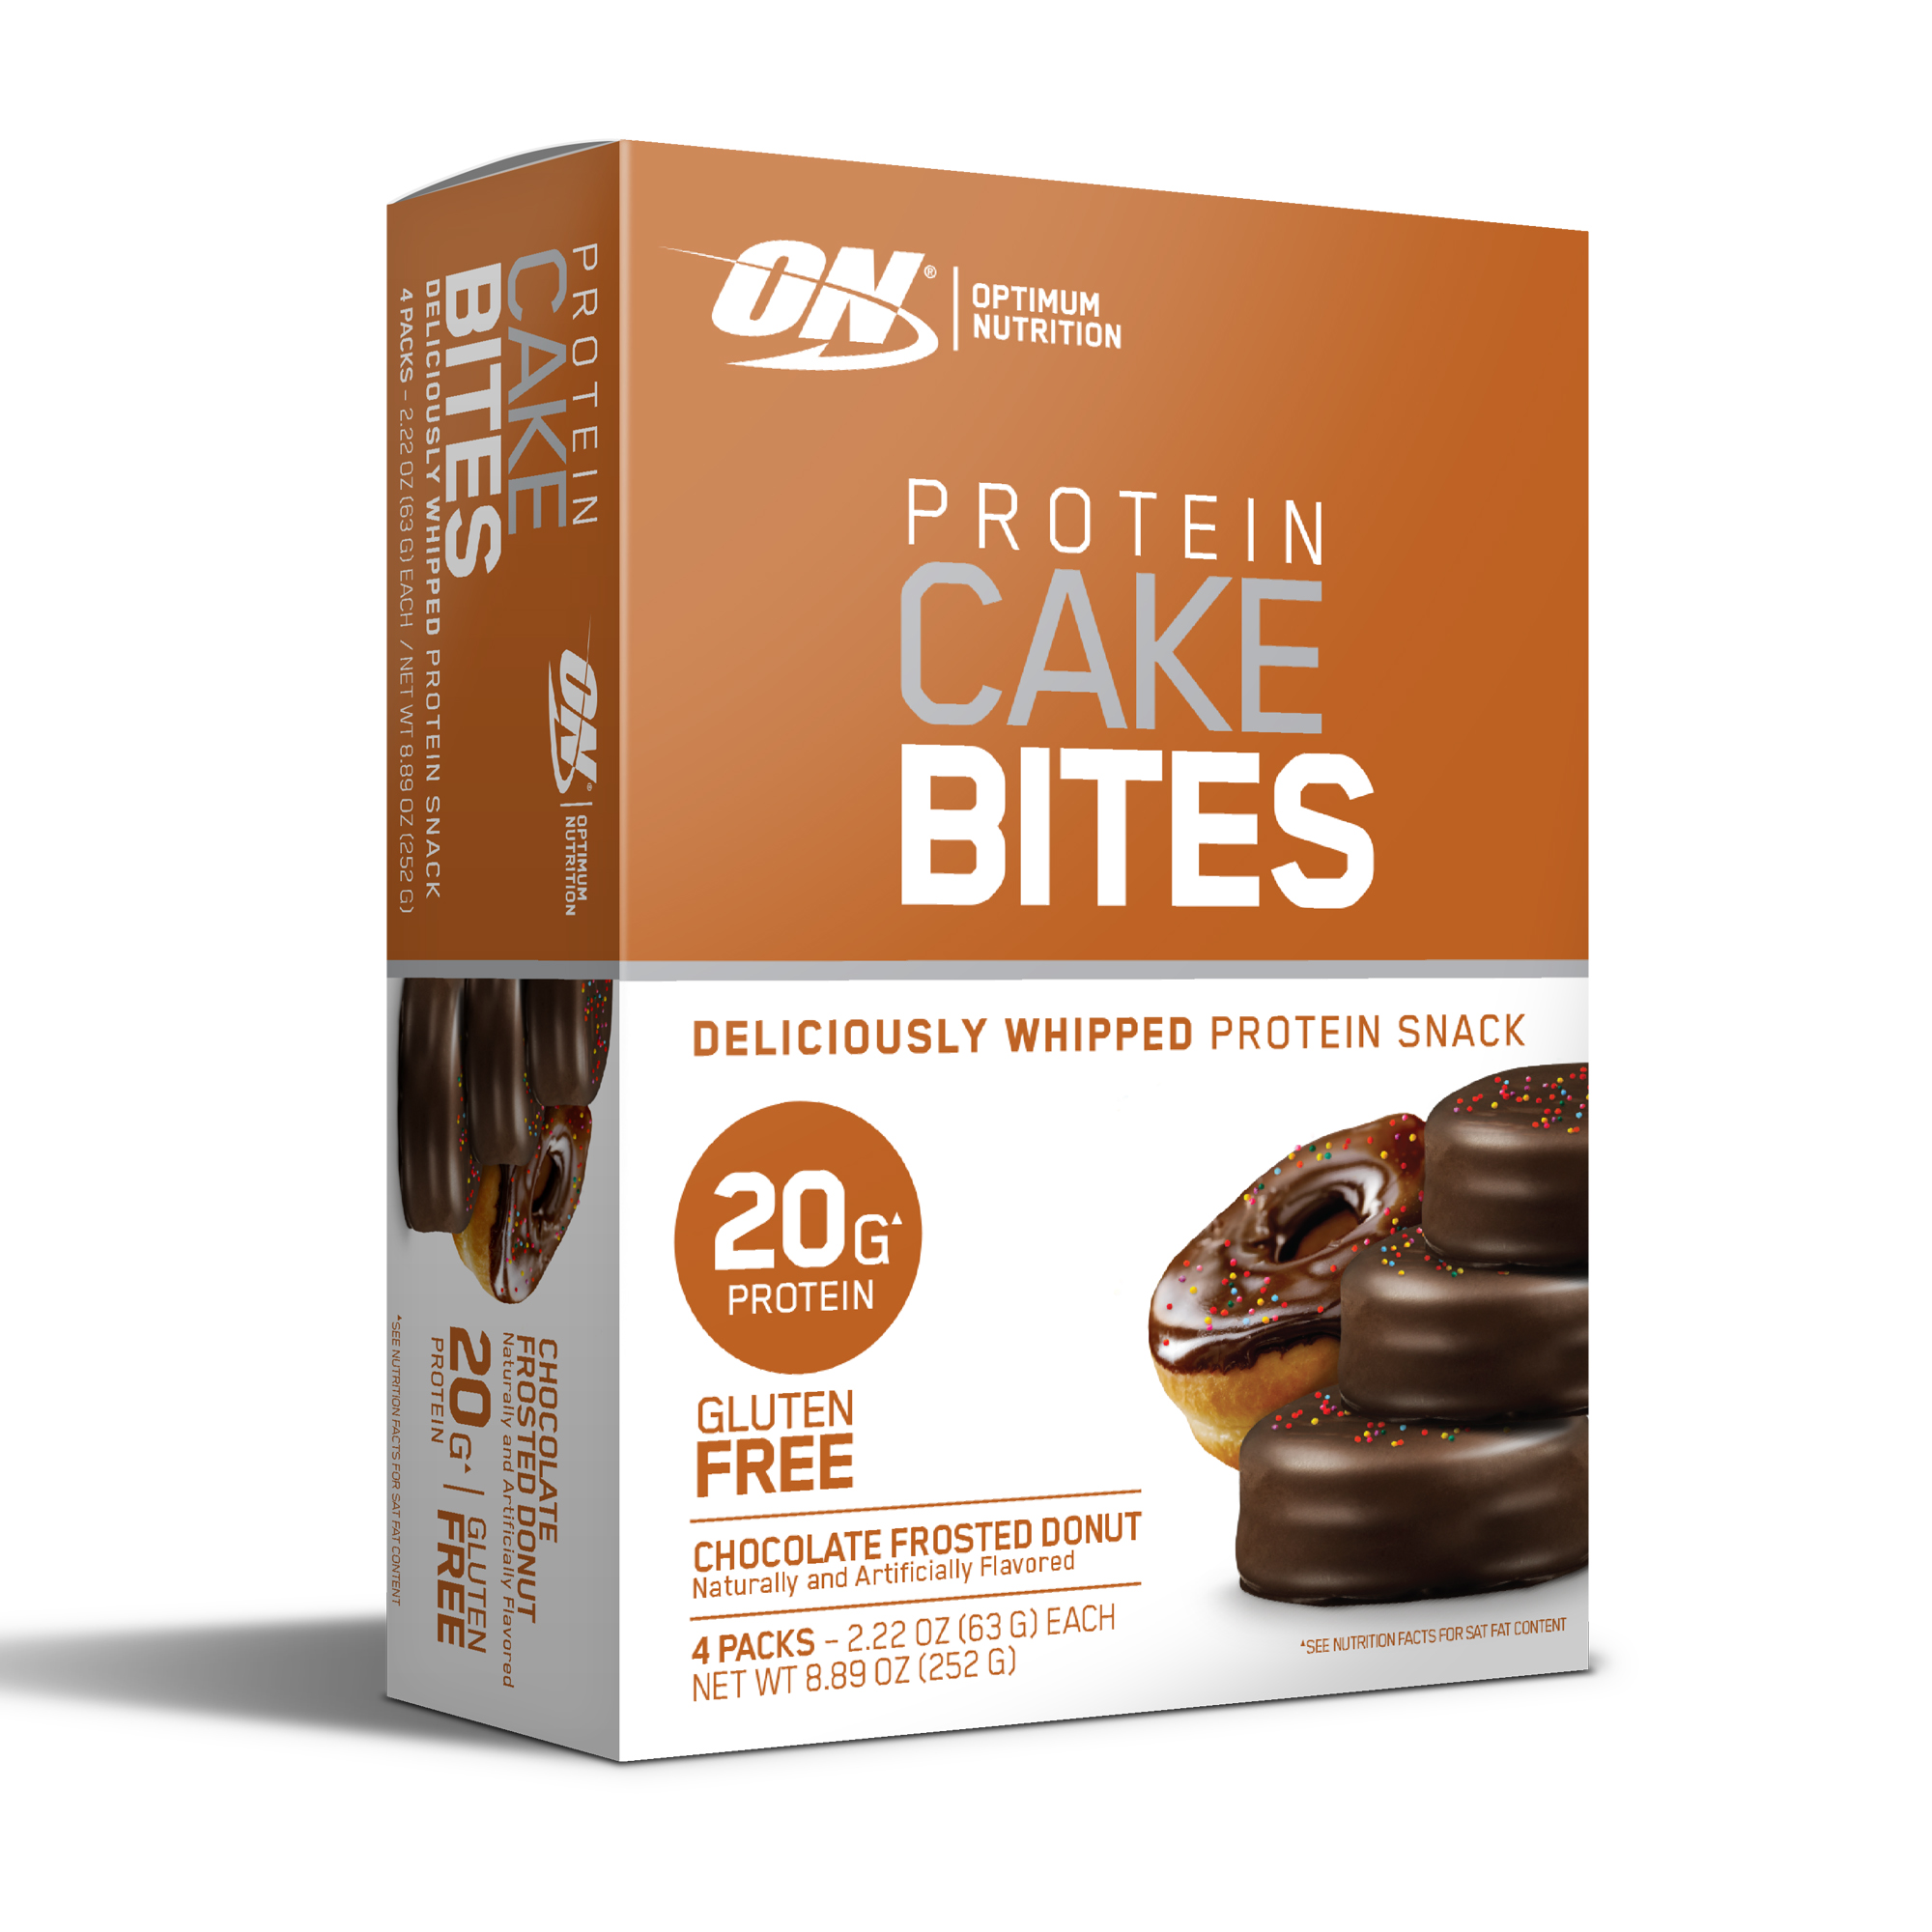 Optimum Nutrition Protein Cake Bites, Chocolate Donut, 20g protein, 4 Count